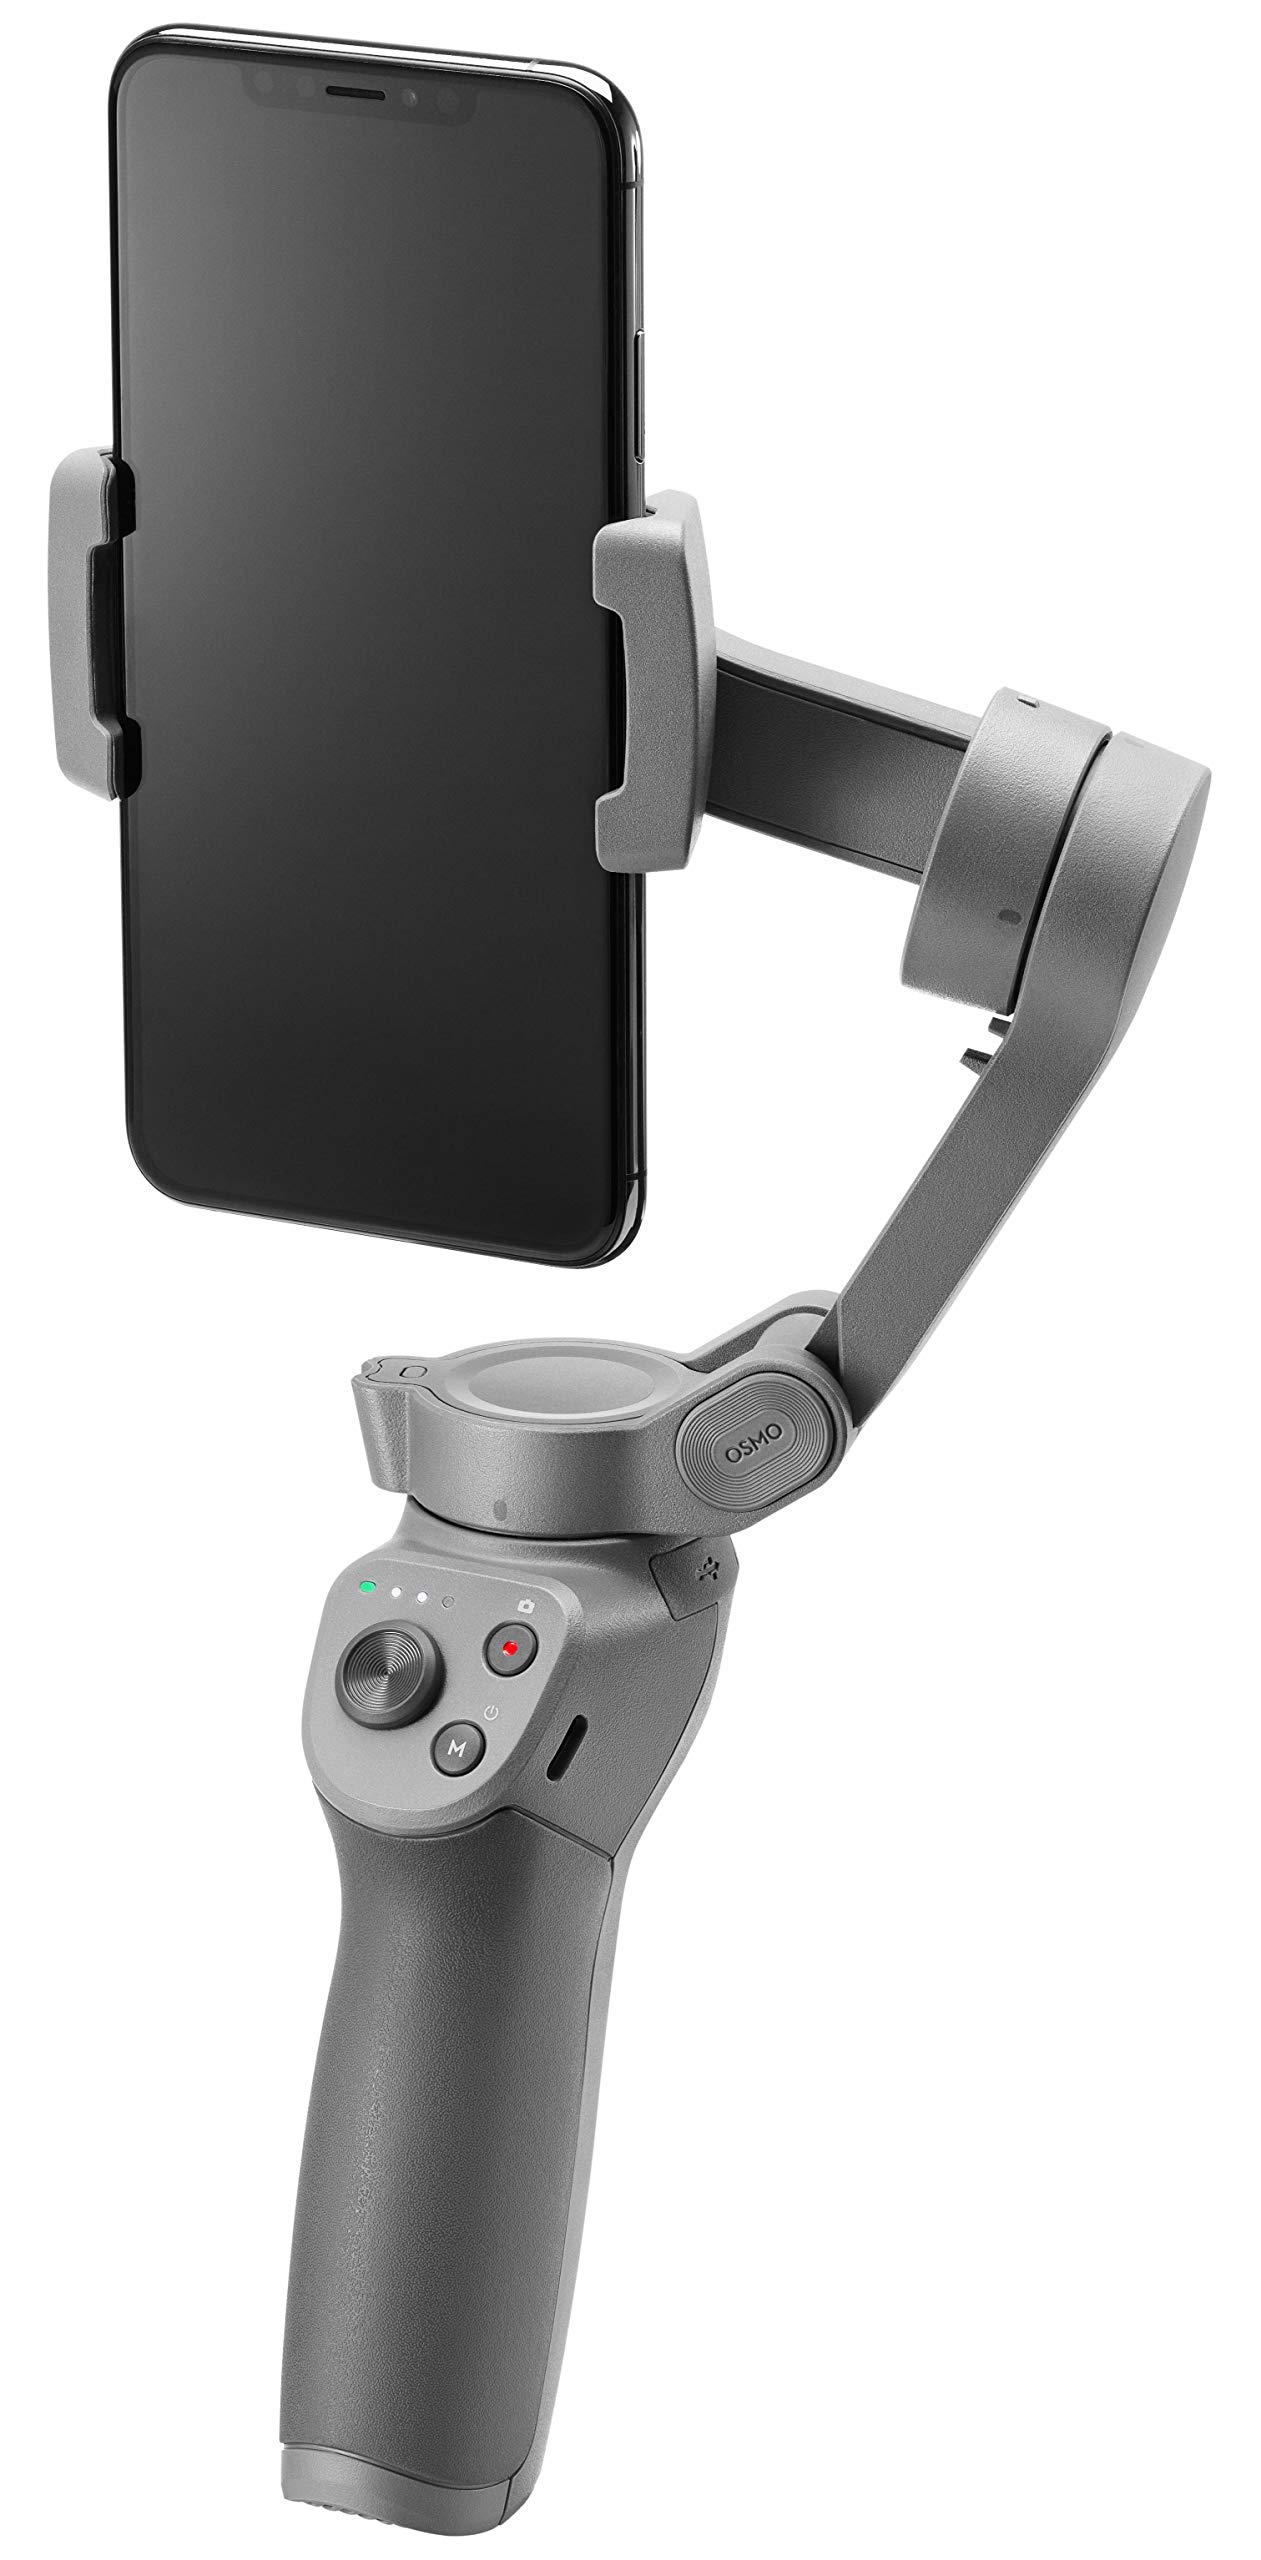 DJI OSMO Mobile 3 Lightweight and Portable 3-axis Handheld Gimbal Stabilizer Compatible with iPhone & Android Phones by DJI